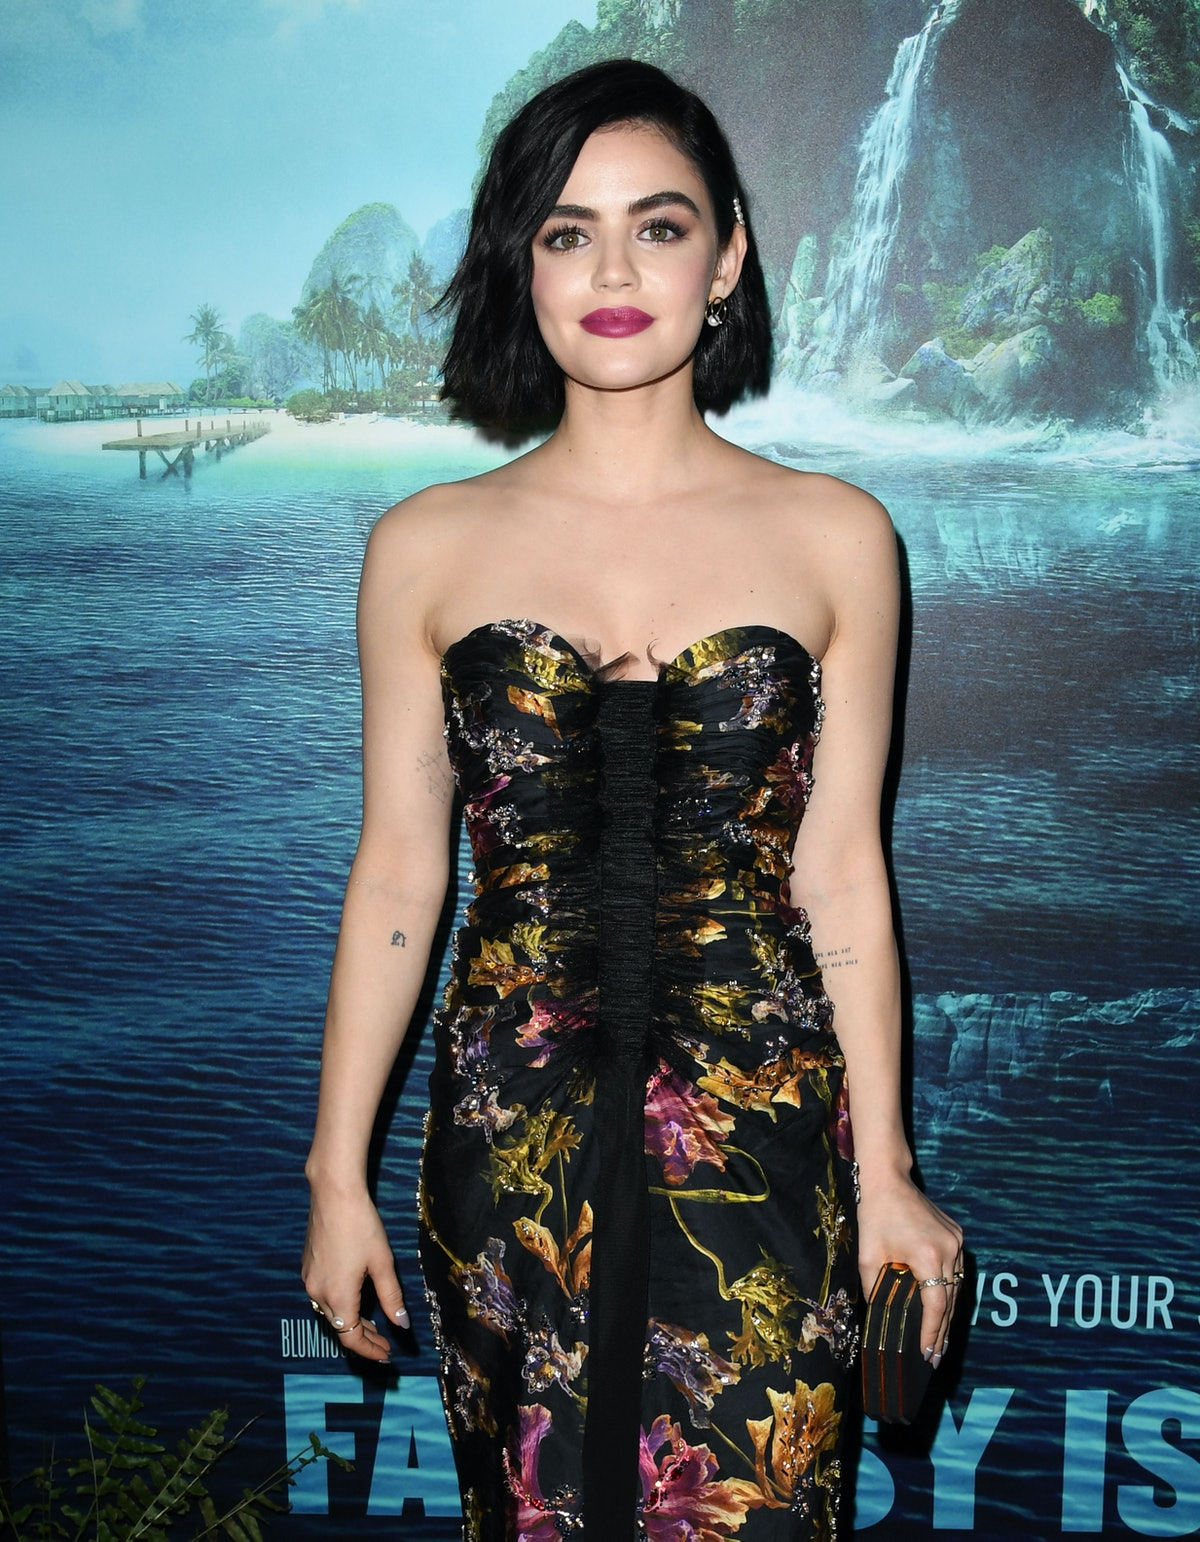 """CENTURY CITY, CALIFORNIA - FEBRUARY 11:  Lucy Hale attends the premiere of Columbia Pictures' """"Blumh..."""